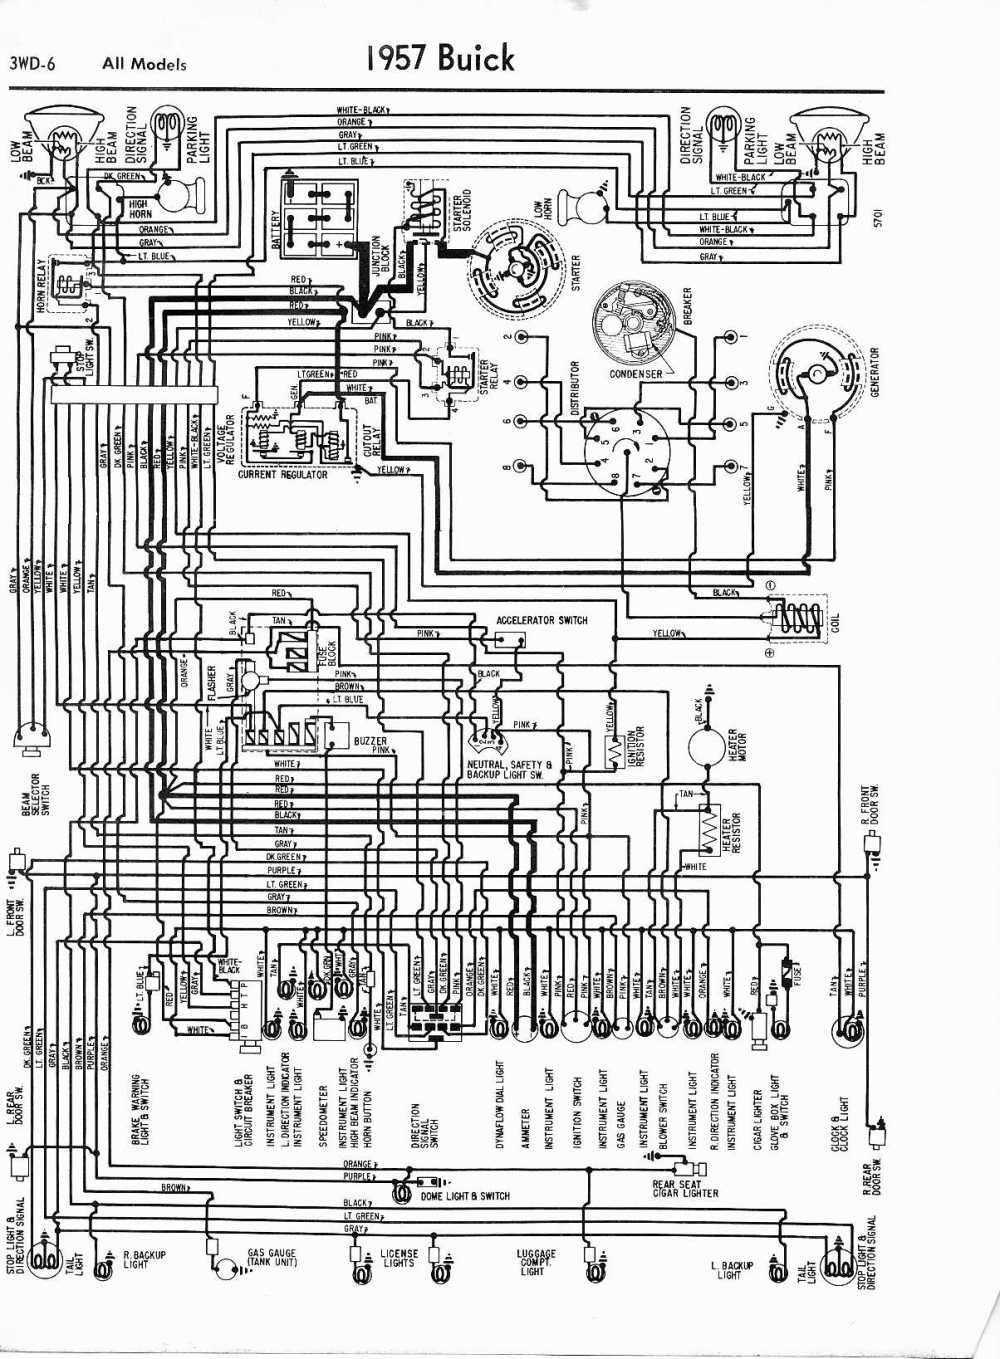 medium resolution of free buick wiring diagram layout wiring diagrams u2022 rh laurafinlay co uk 2005 buick rendezvous radio